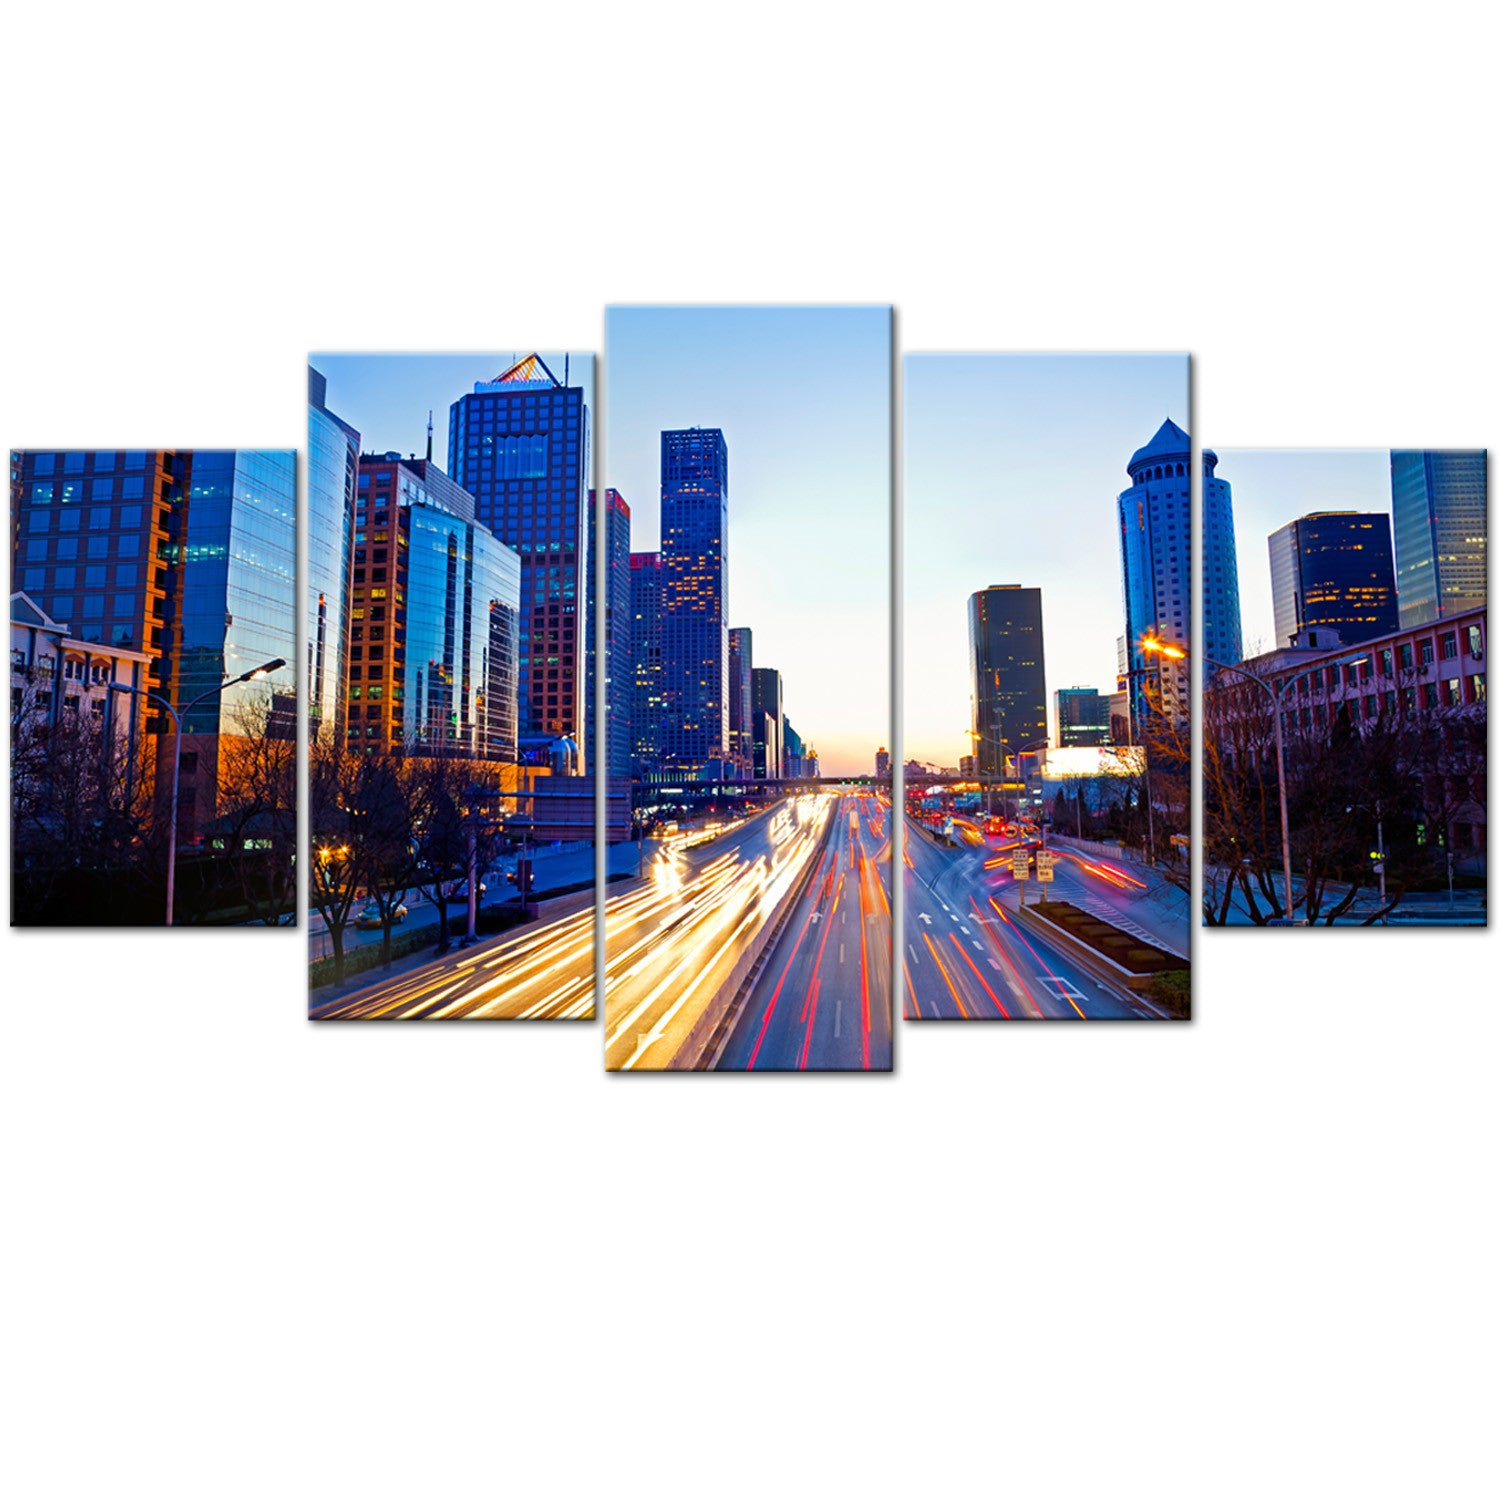 Guanghua City 5 Piece Canvas Wallart - HD Quality